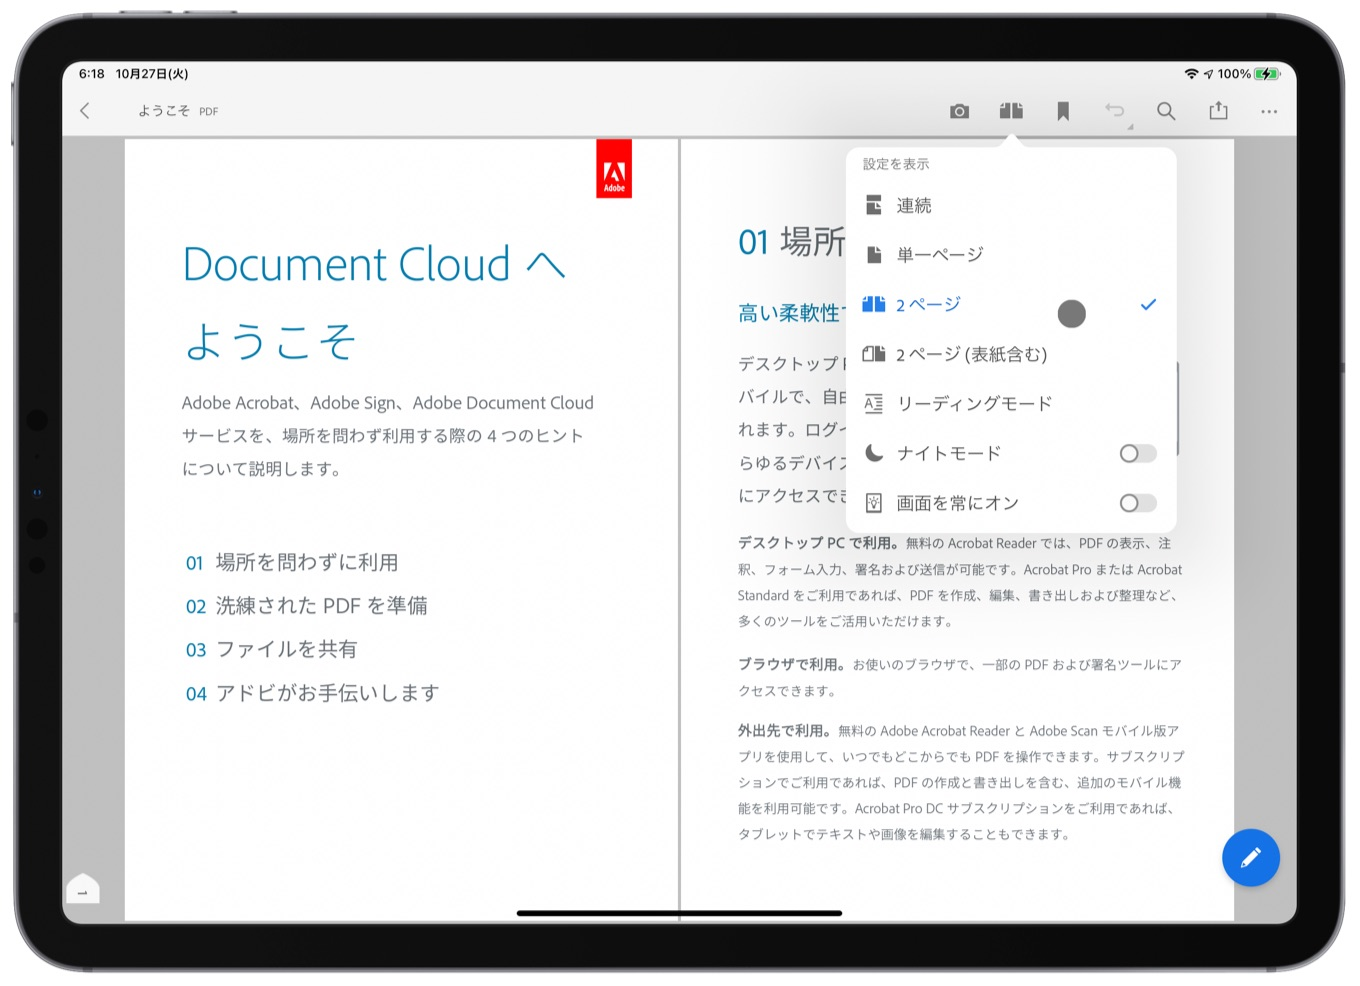 Adobe Acrobat Reader for iPadで見開き表示